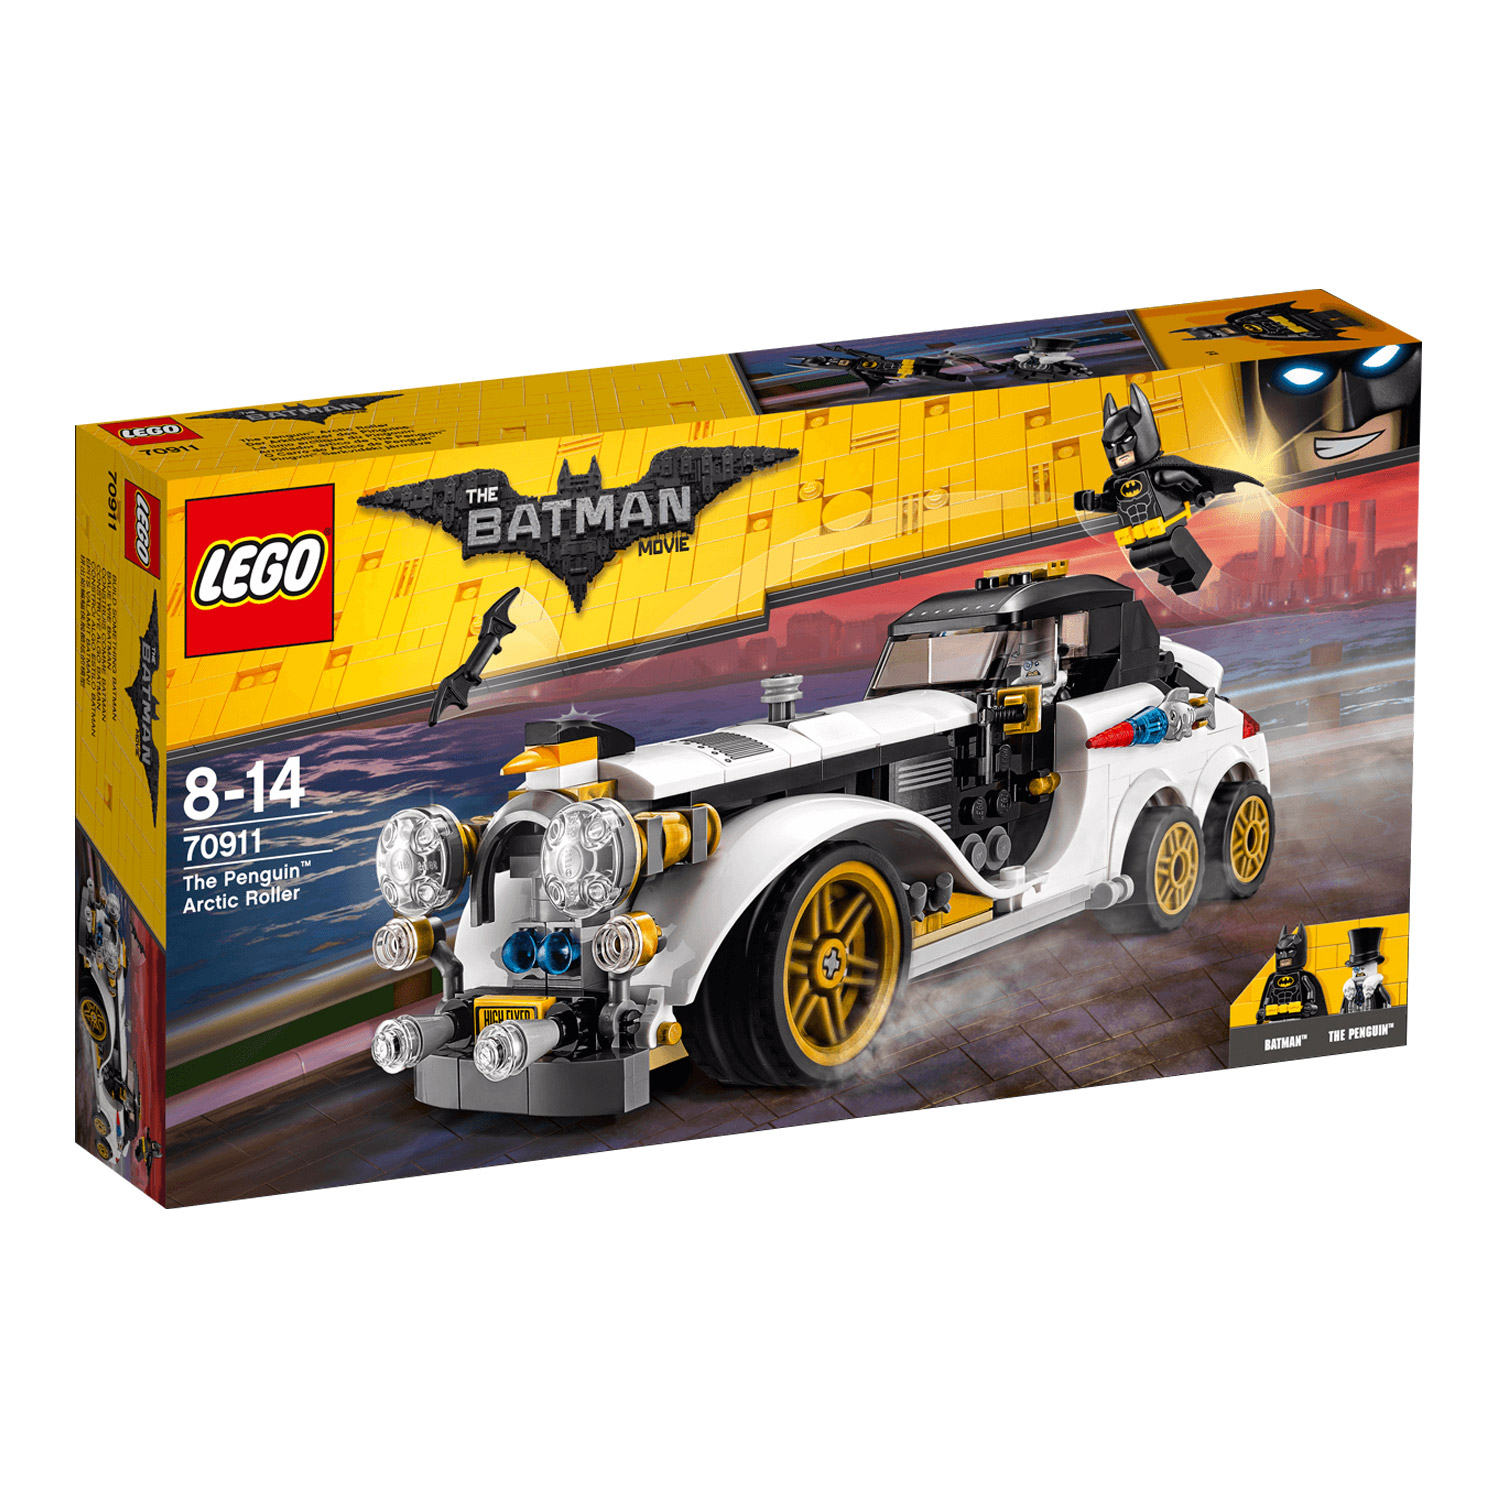 Batman Lego® 70911 70911 Lego® Movie The 5jRAqc34L